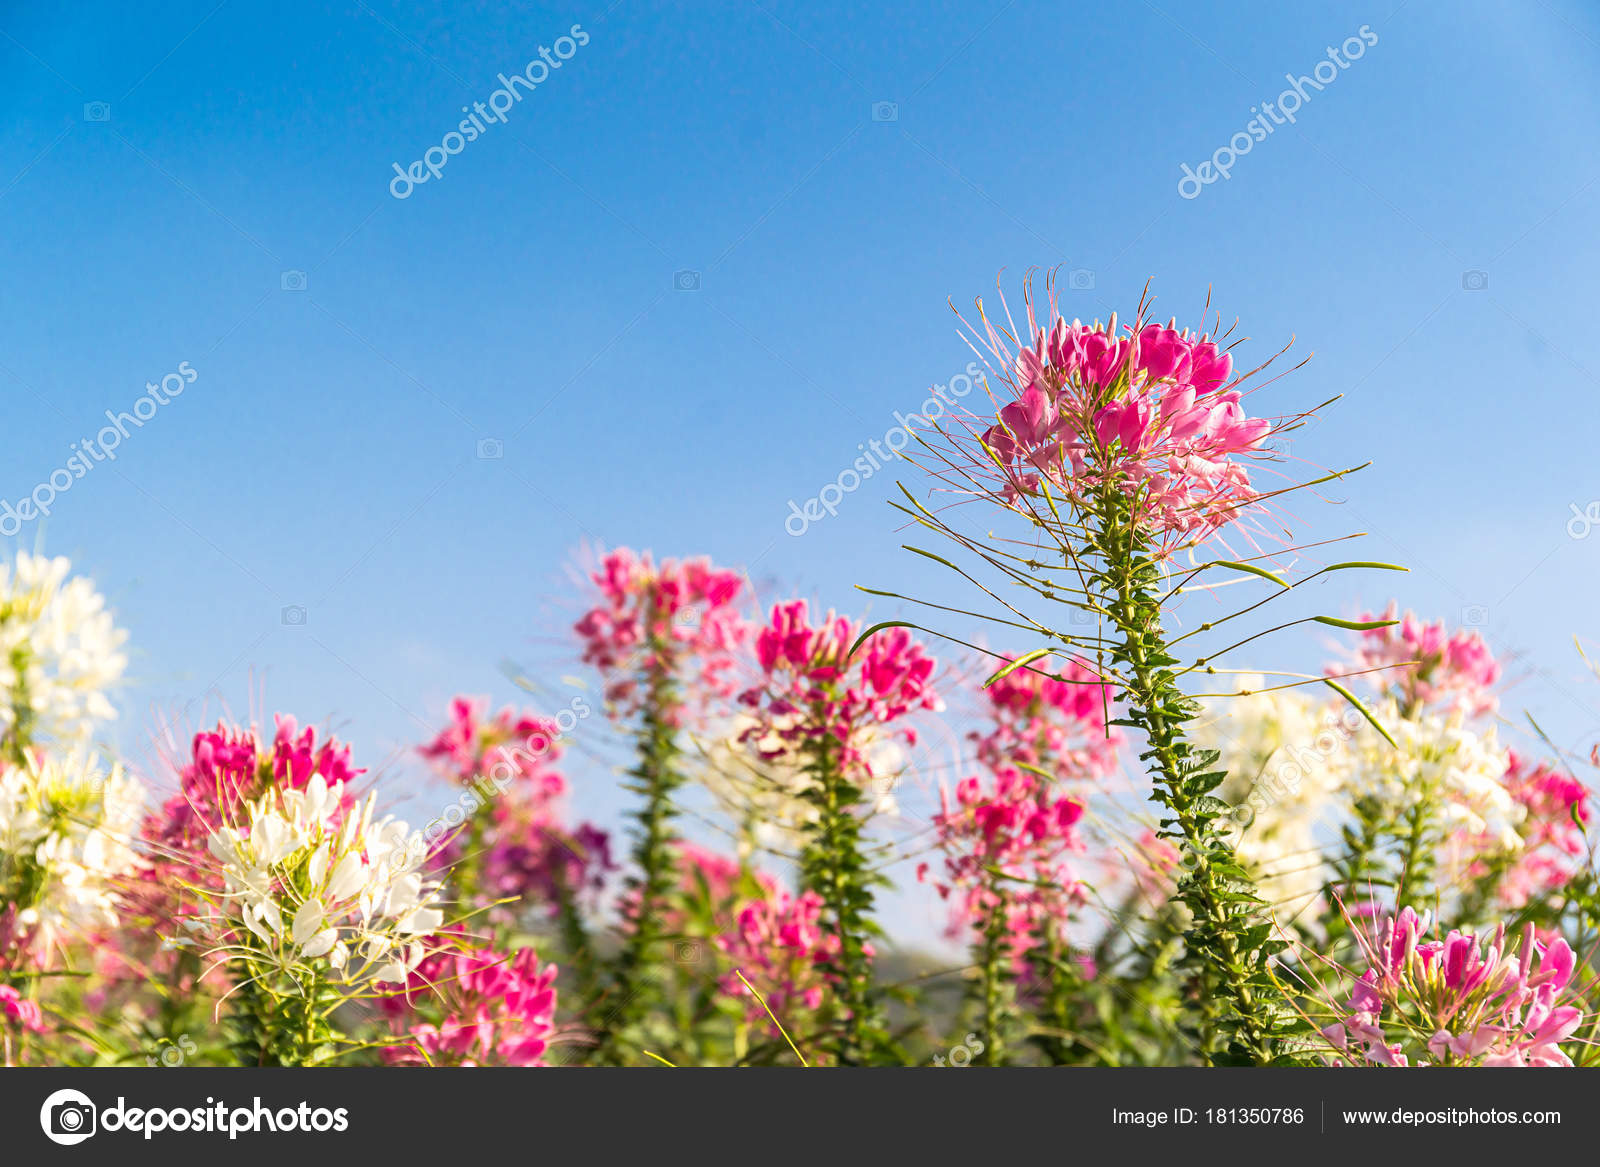 Pink and white spider flower agent blue sky stock photo stoonn close up pink and white spider flowercleome hassleriana in the garden agent blue sky photo by stoonn mightylinksfo